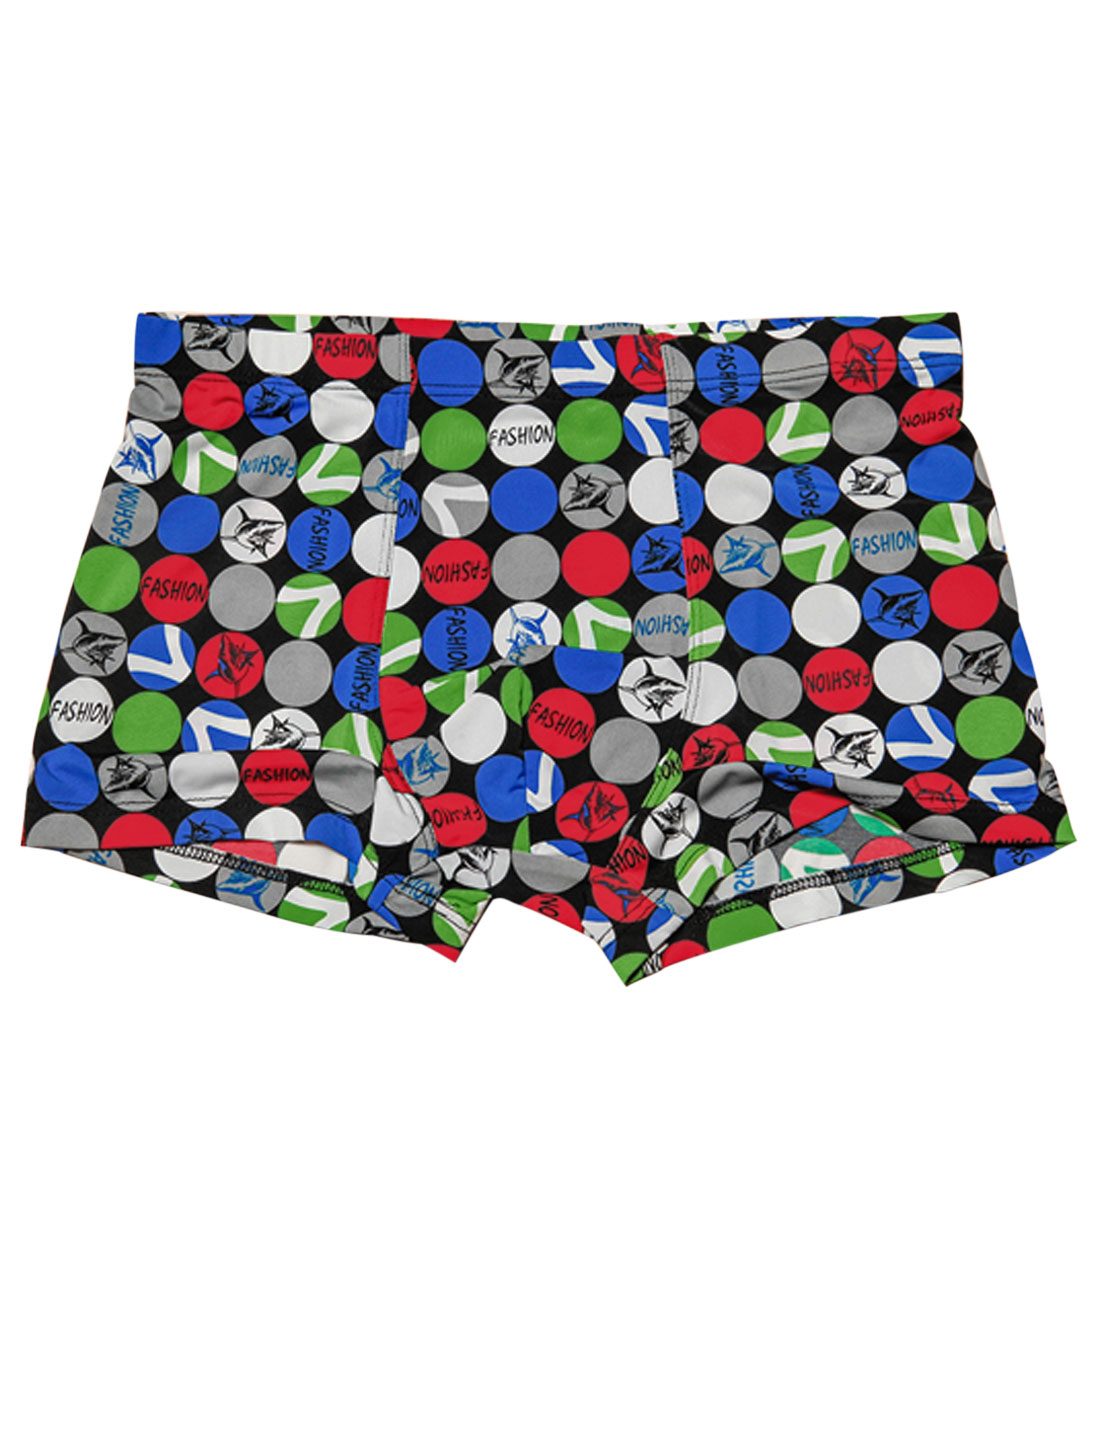 Men Elastic Waist Circle Letters Pattern Stylish Boxer Briefs Multicolor W30